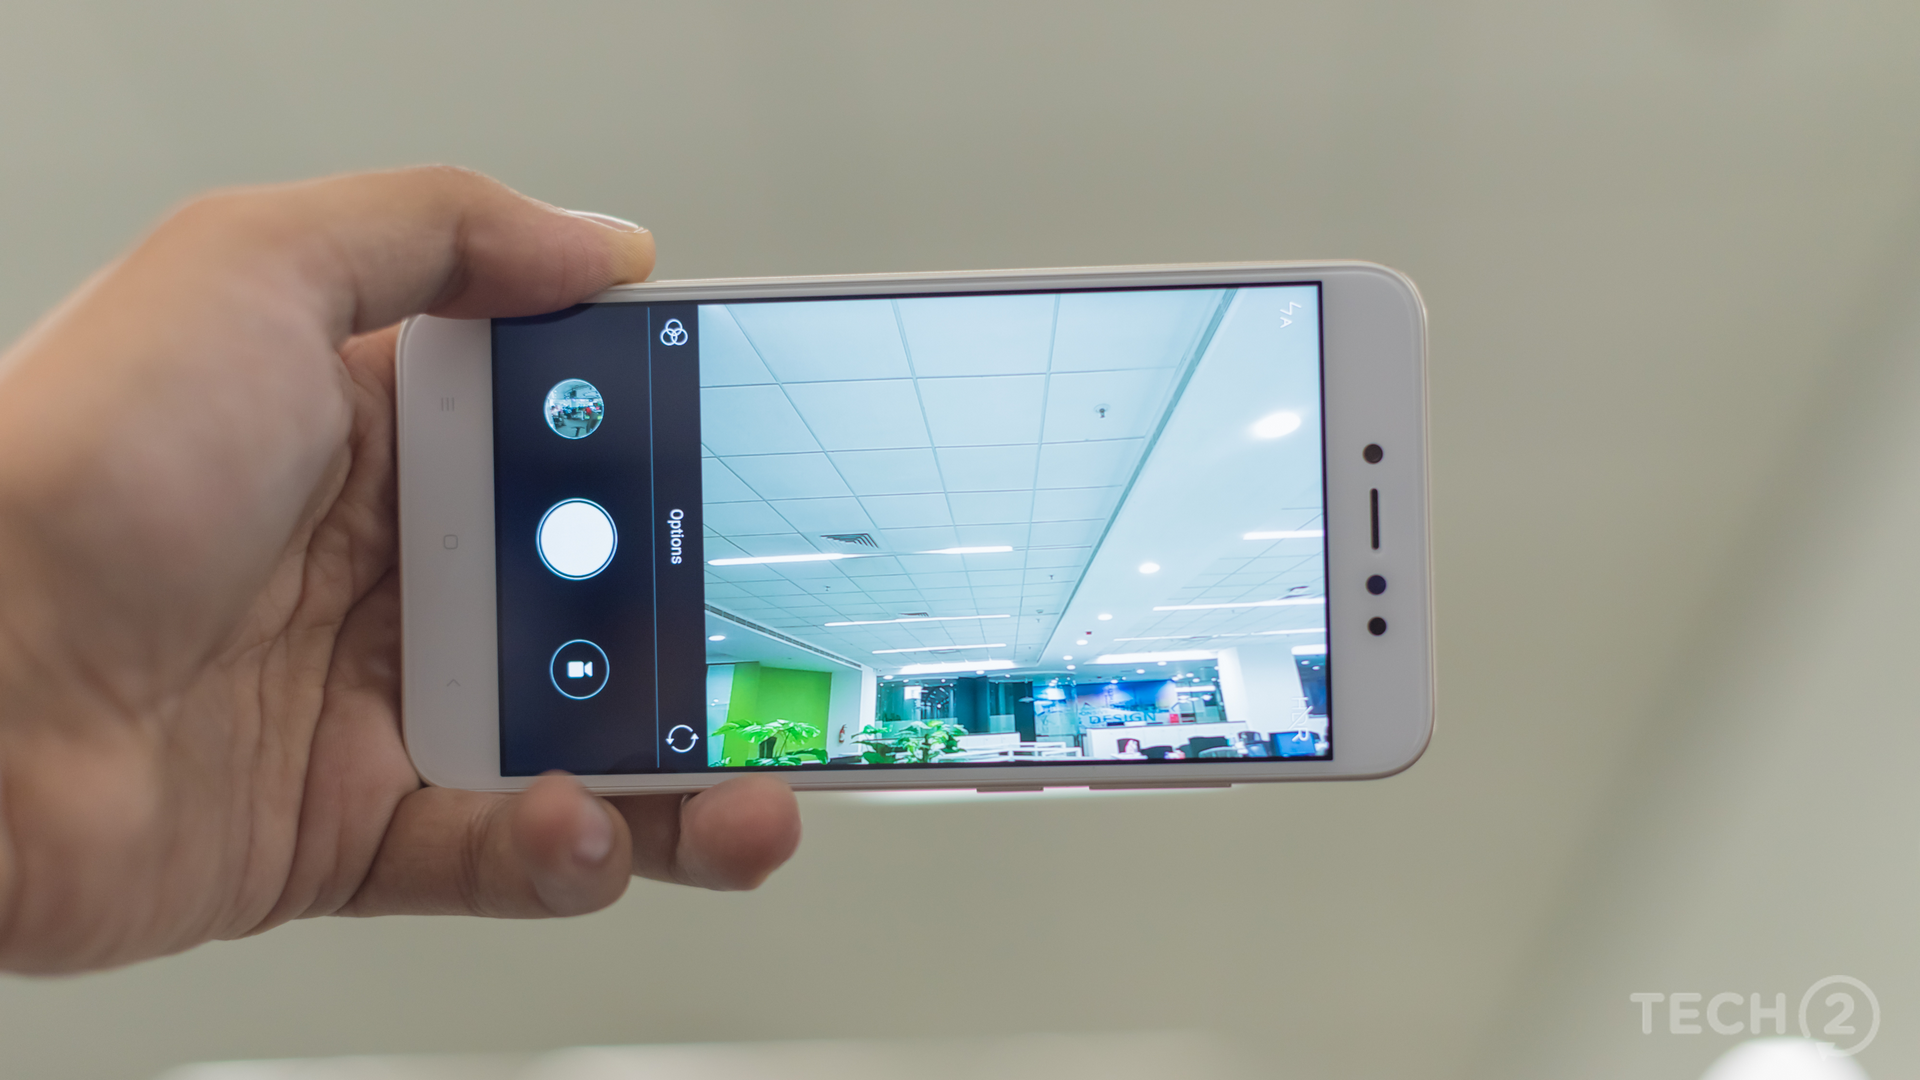 There's nothing different in terms of the camera user interface. Switching modes are relatively simple. Image: tech2/Rehan Hooda